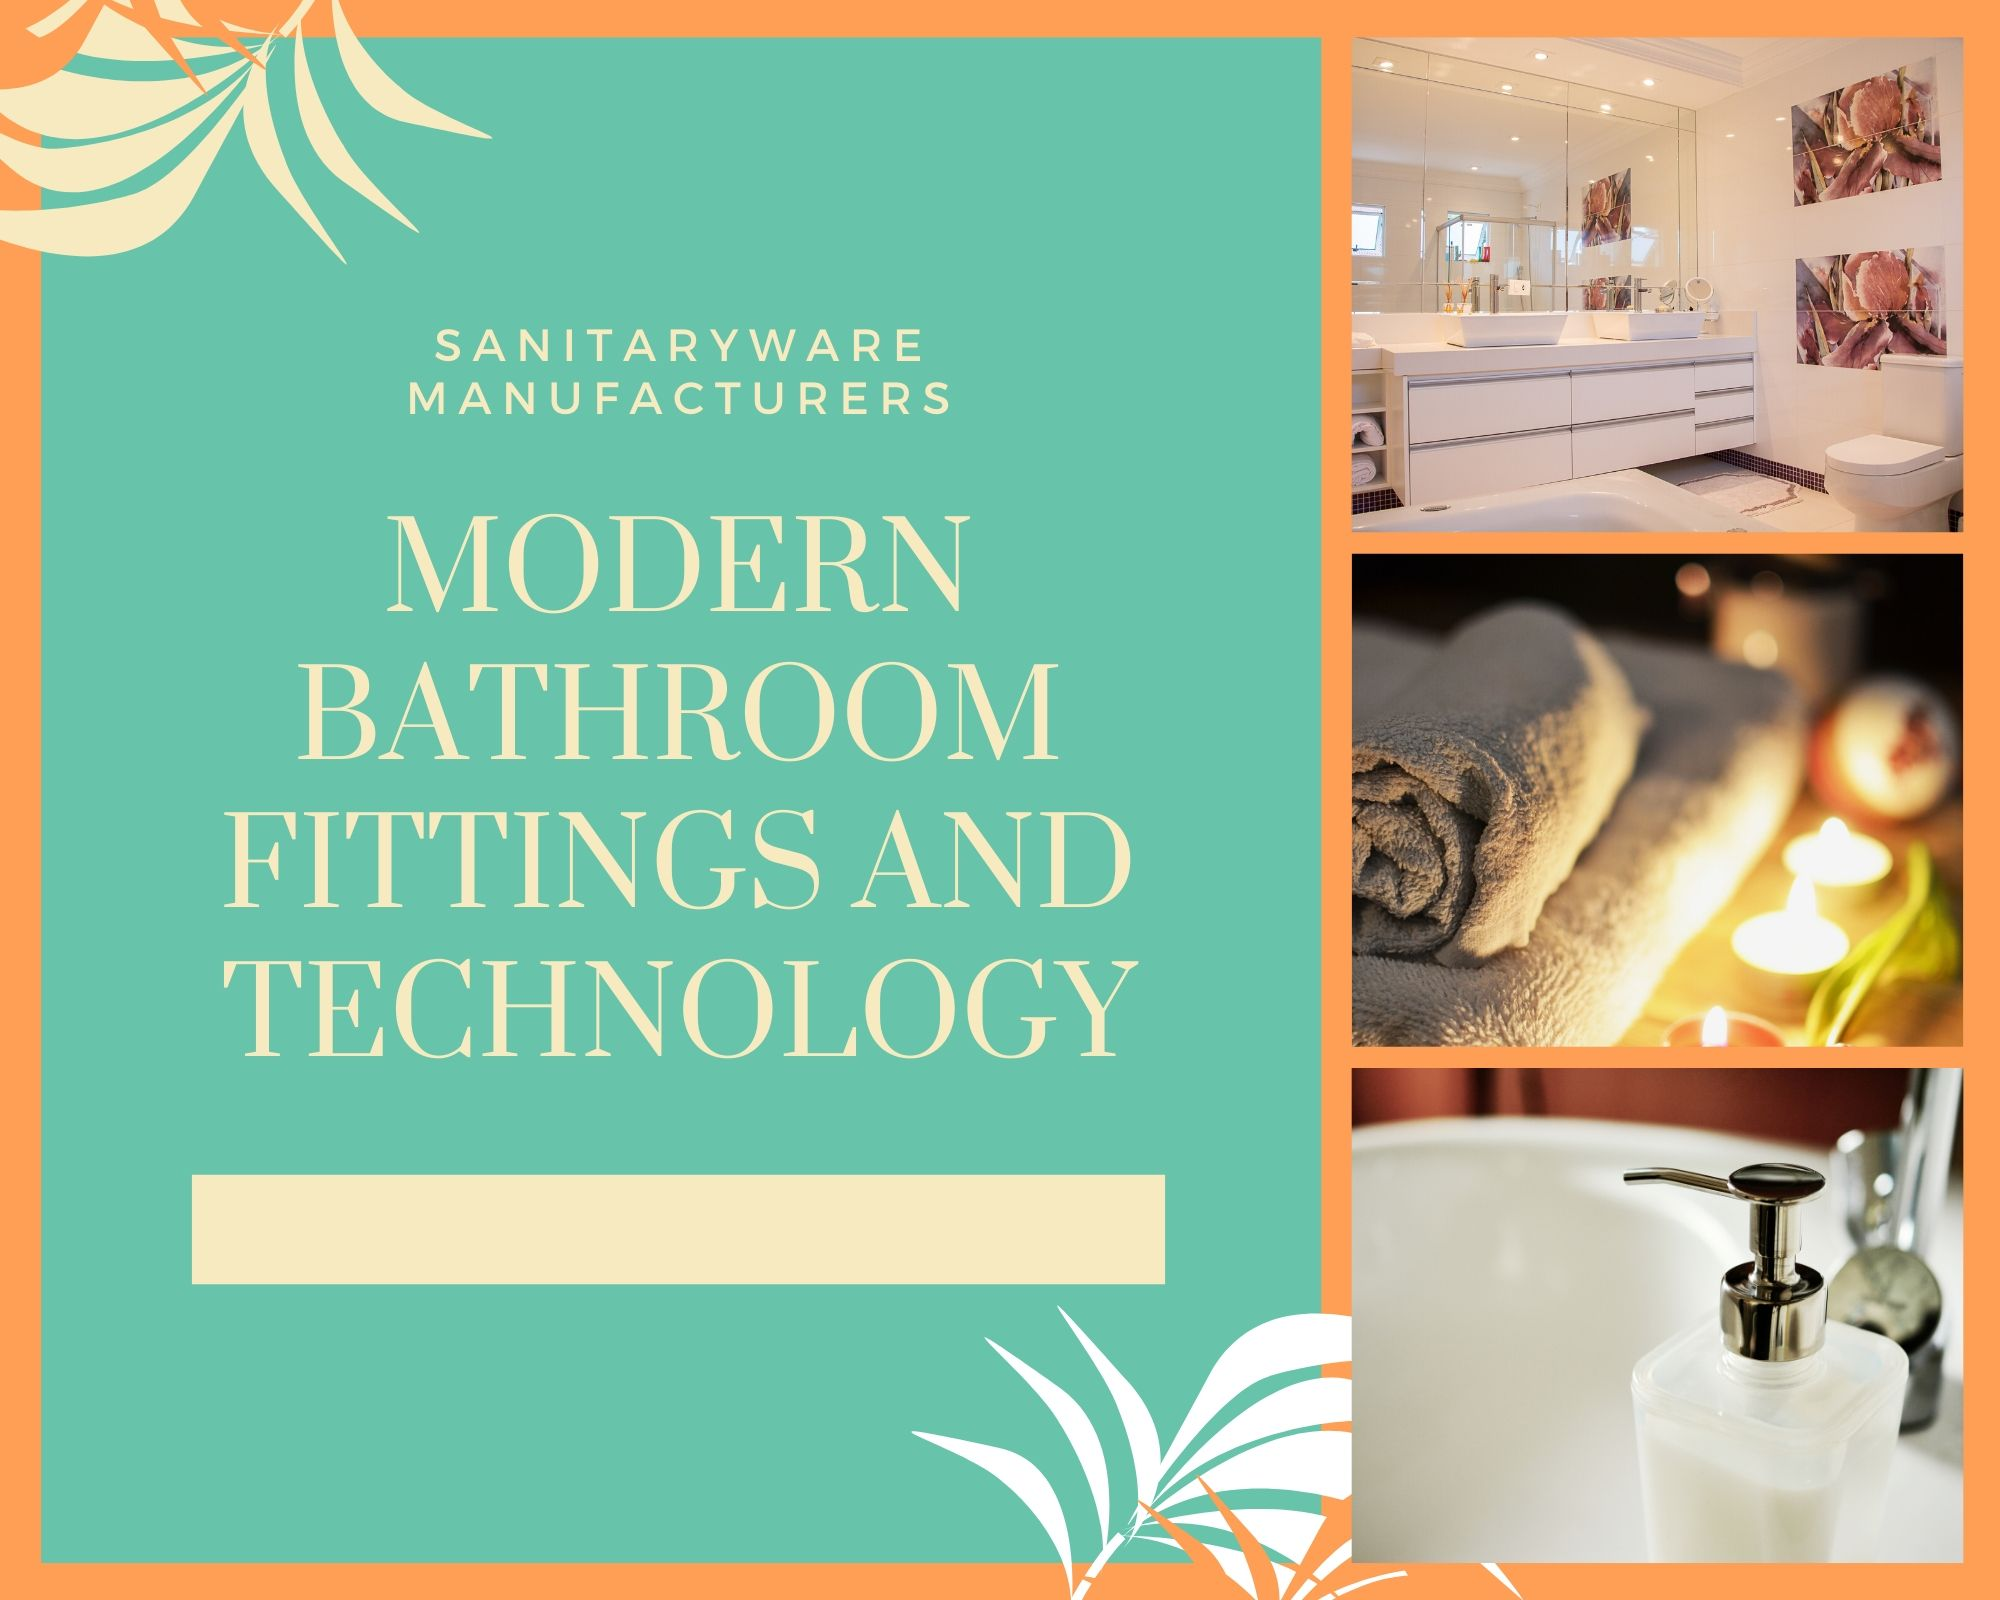 Sanitaryware Manufacturers Saving Water with Modern Bathroom Fittings and Technology